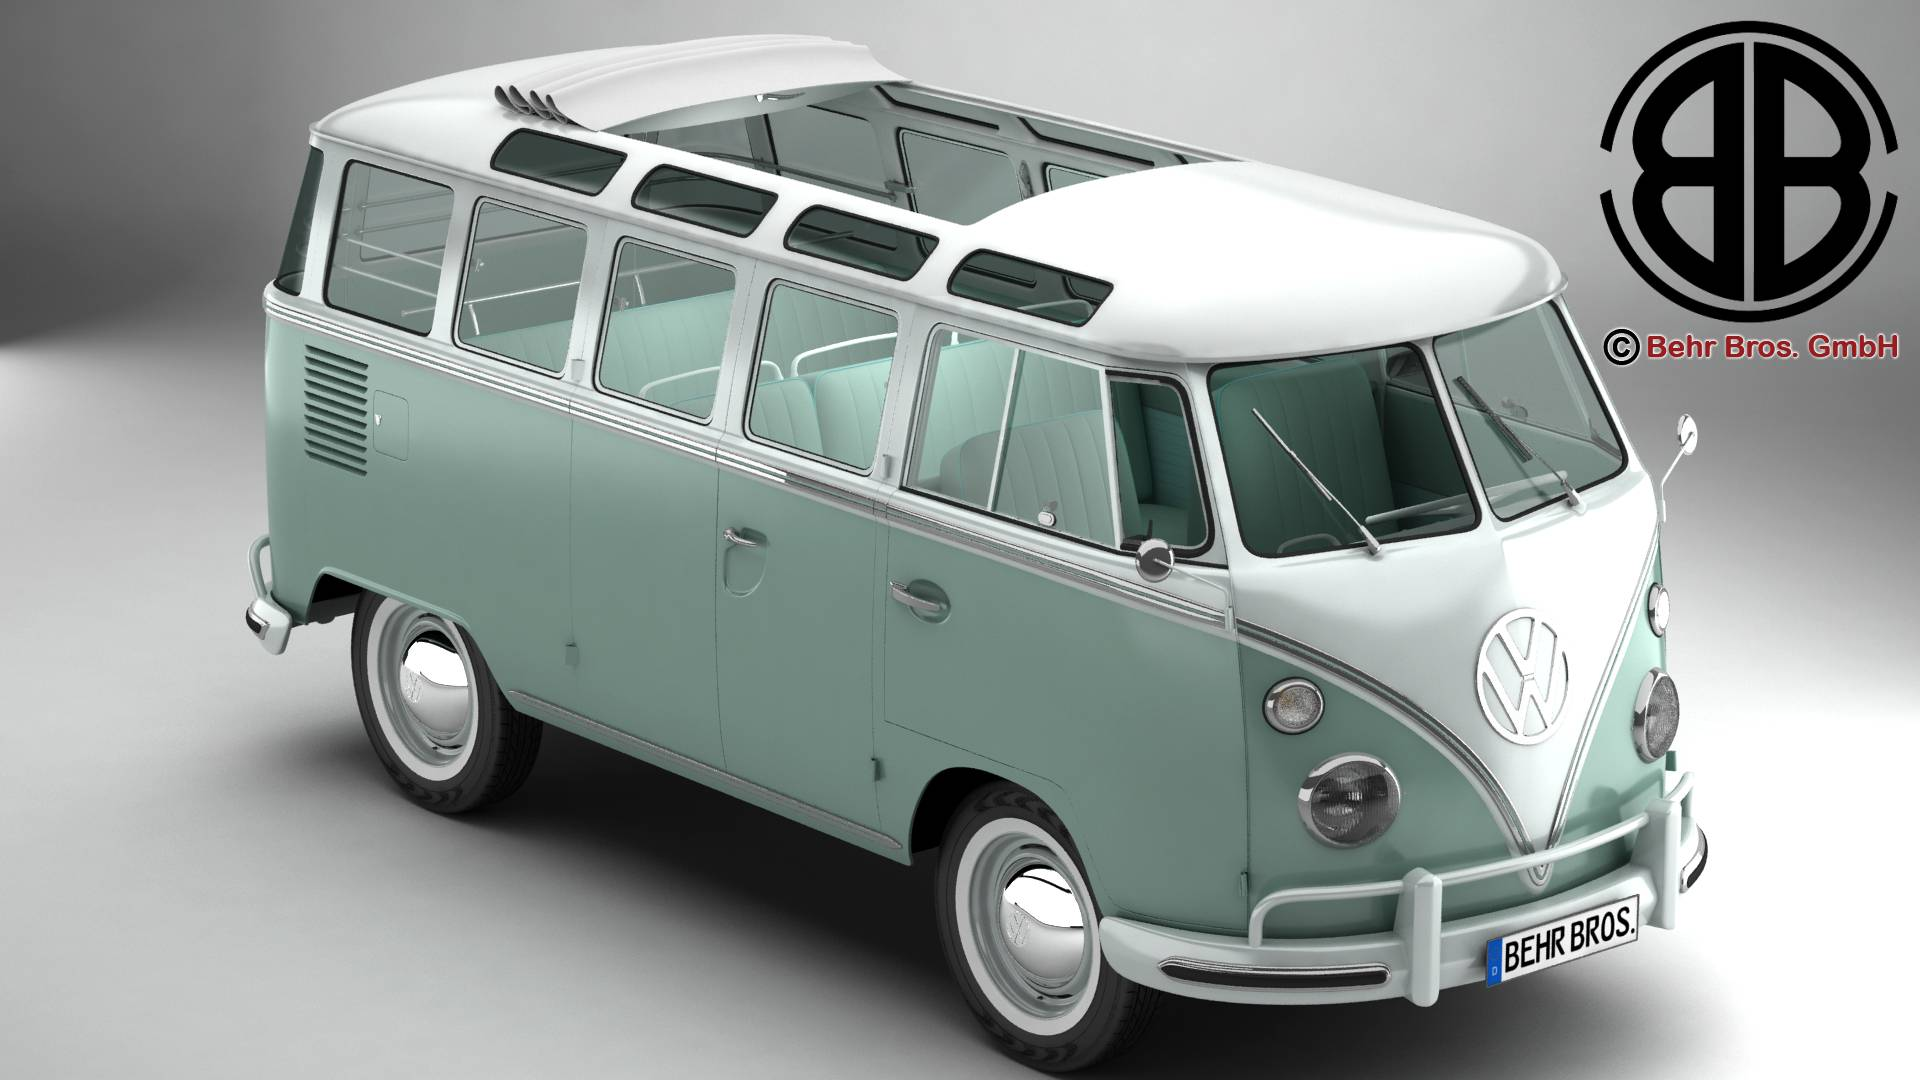 volkswagen type 2 samba 1963 3d model buy volkswagen type 2 samba 1963 3d model flatpyramid. Black Bedroom Furniture Sets. Home Design Ideas